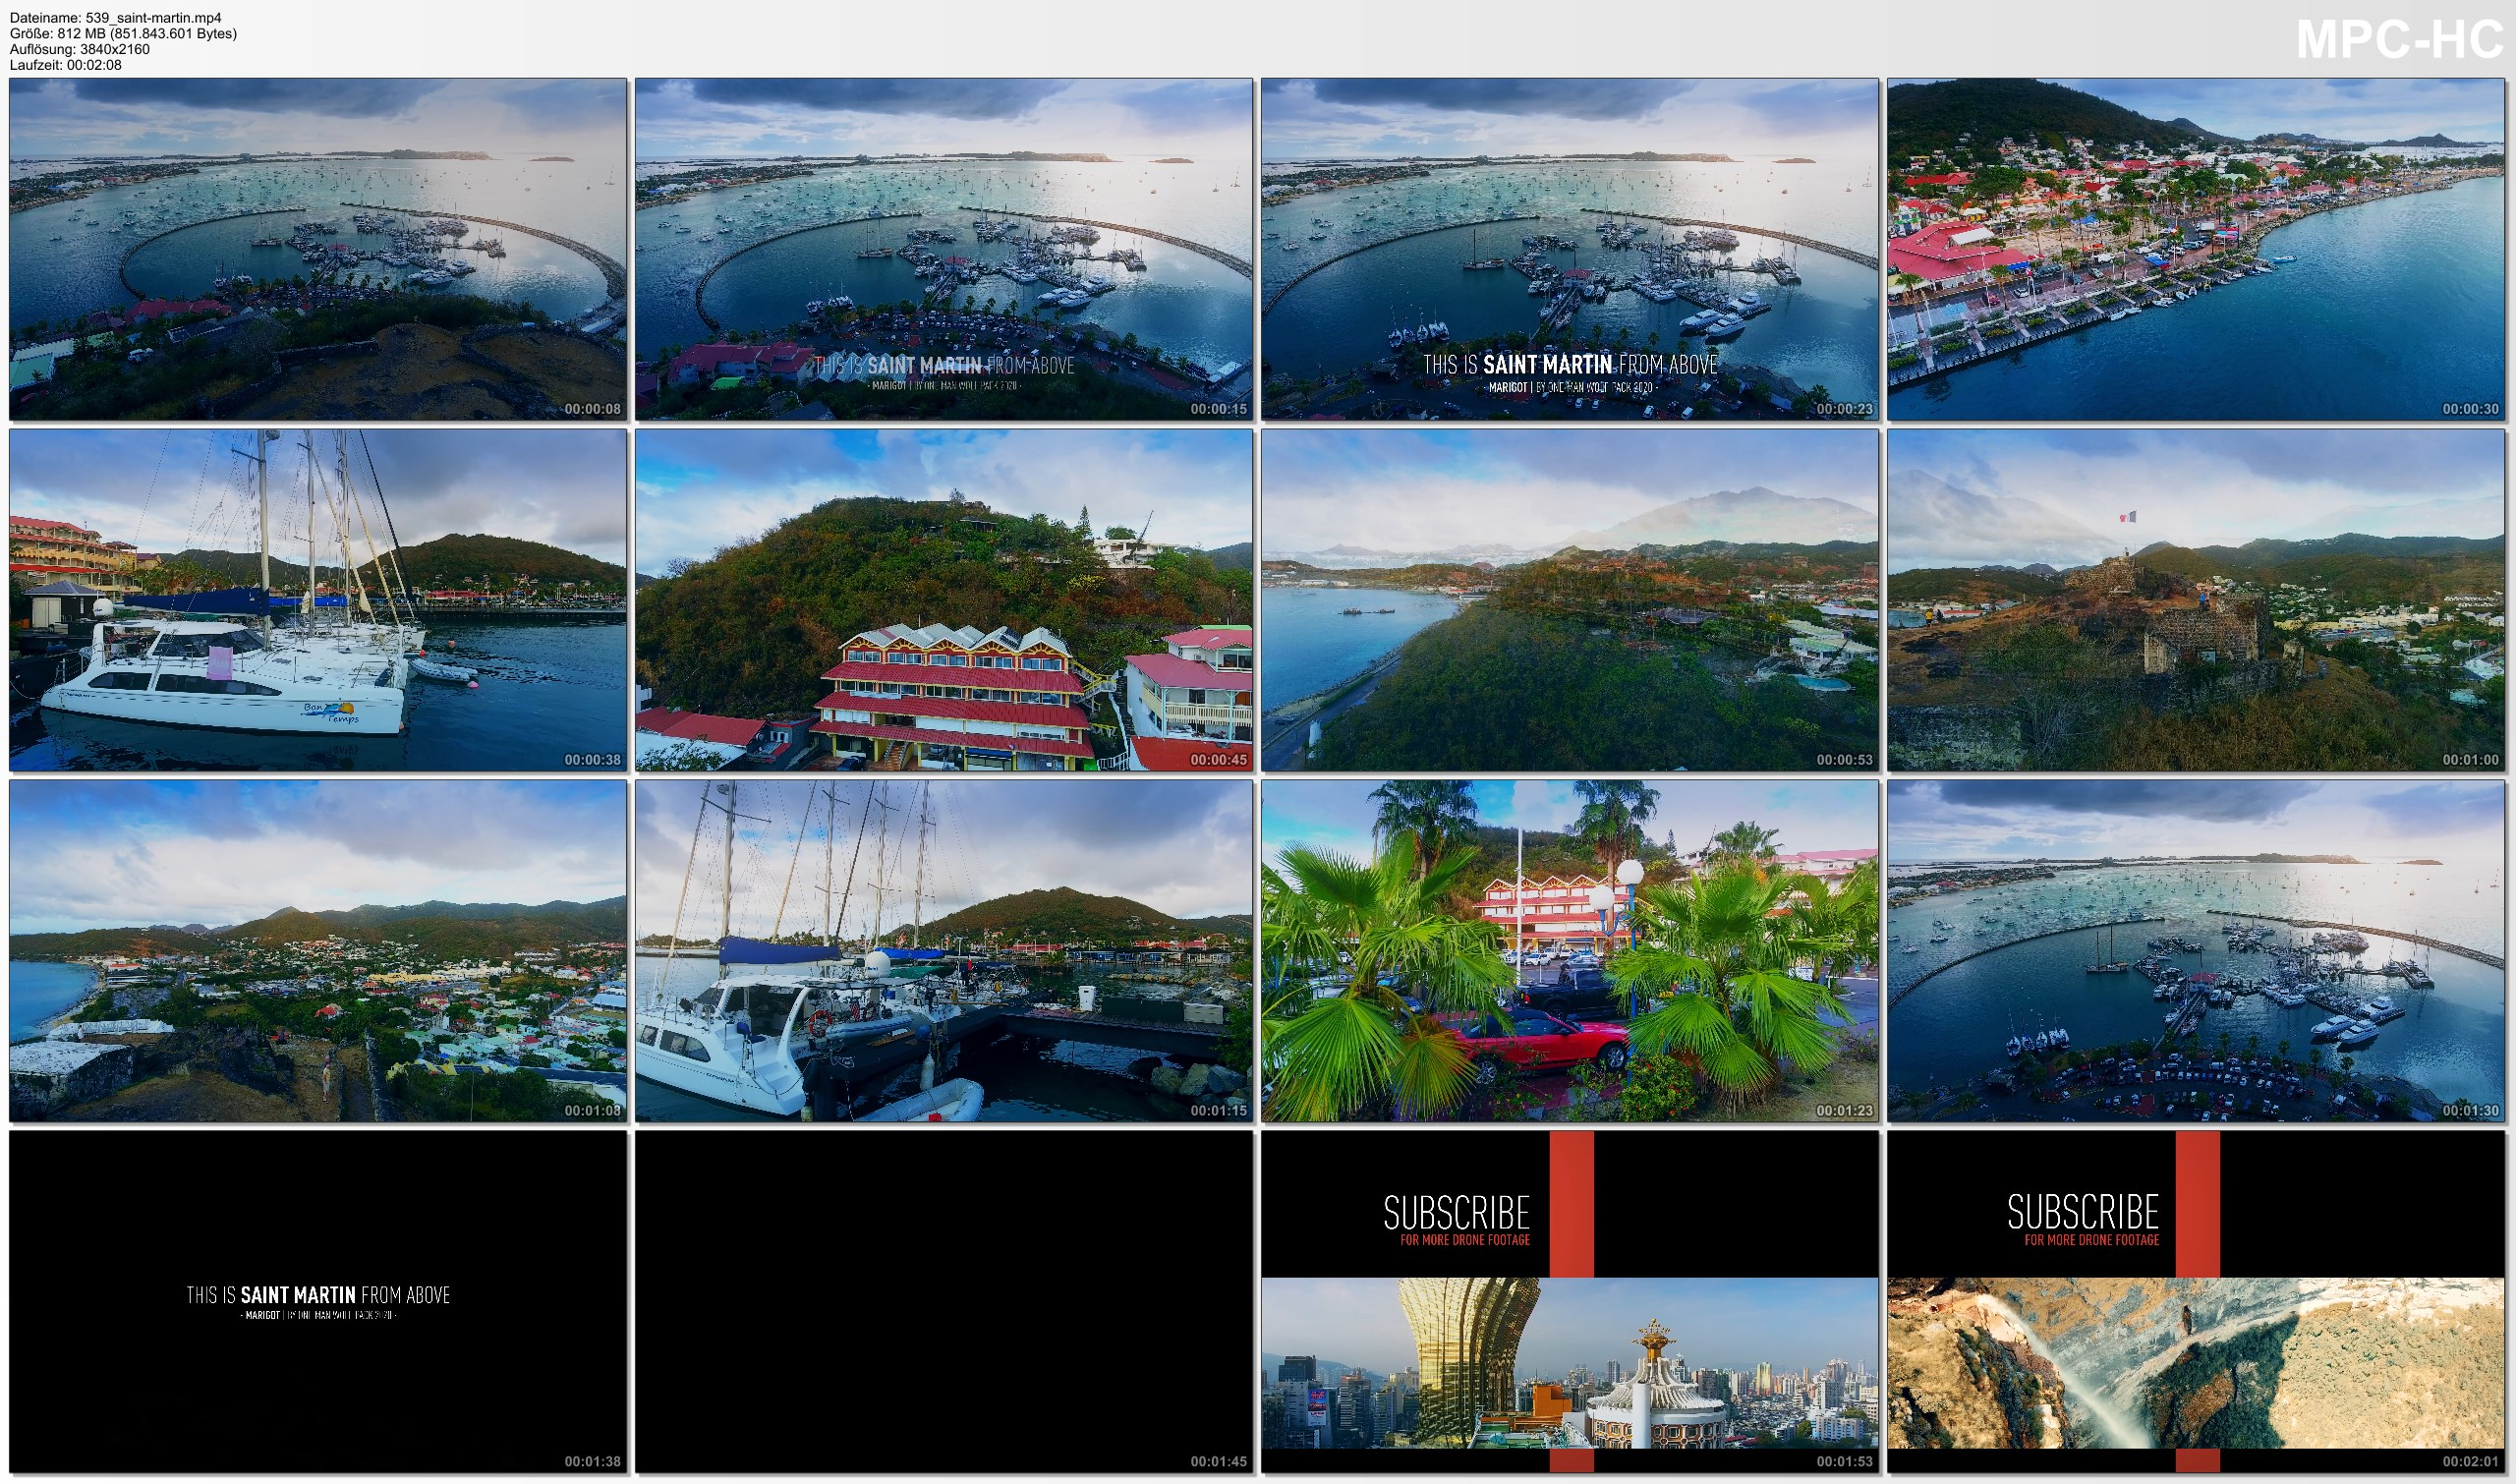 Drone Pictures from Video 【4K】SAINT MARTIN from Above 2020 | Capital City Marigot | Cinematic Wolf Aerial™ Drone Film